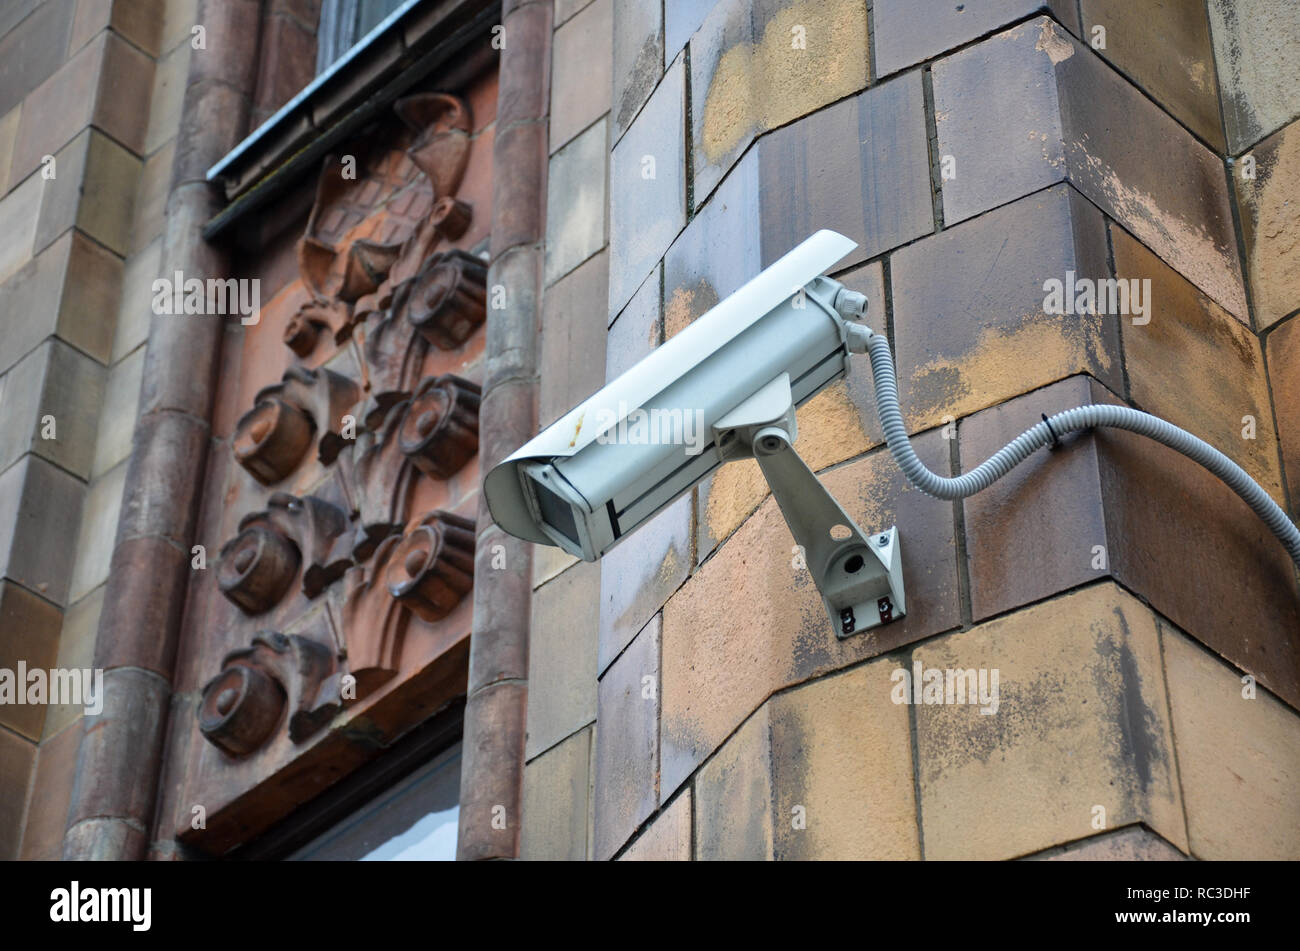 A CCTV camera, Latvian Academy of Sciences, built between 1951 and 1961 in the Stalinist style, Riga, Republic of Latvia, Baltics, December 2018 - Stock Image